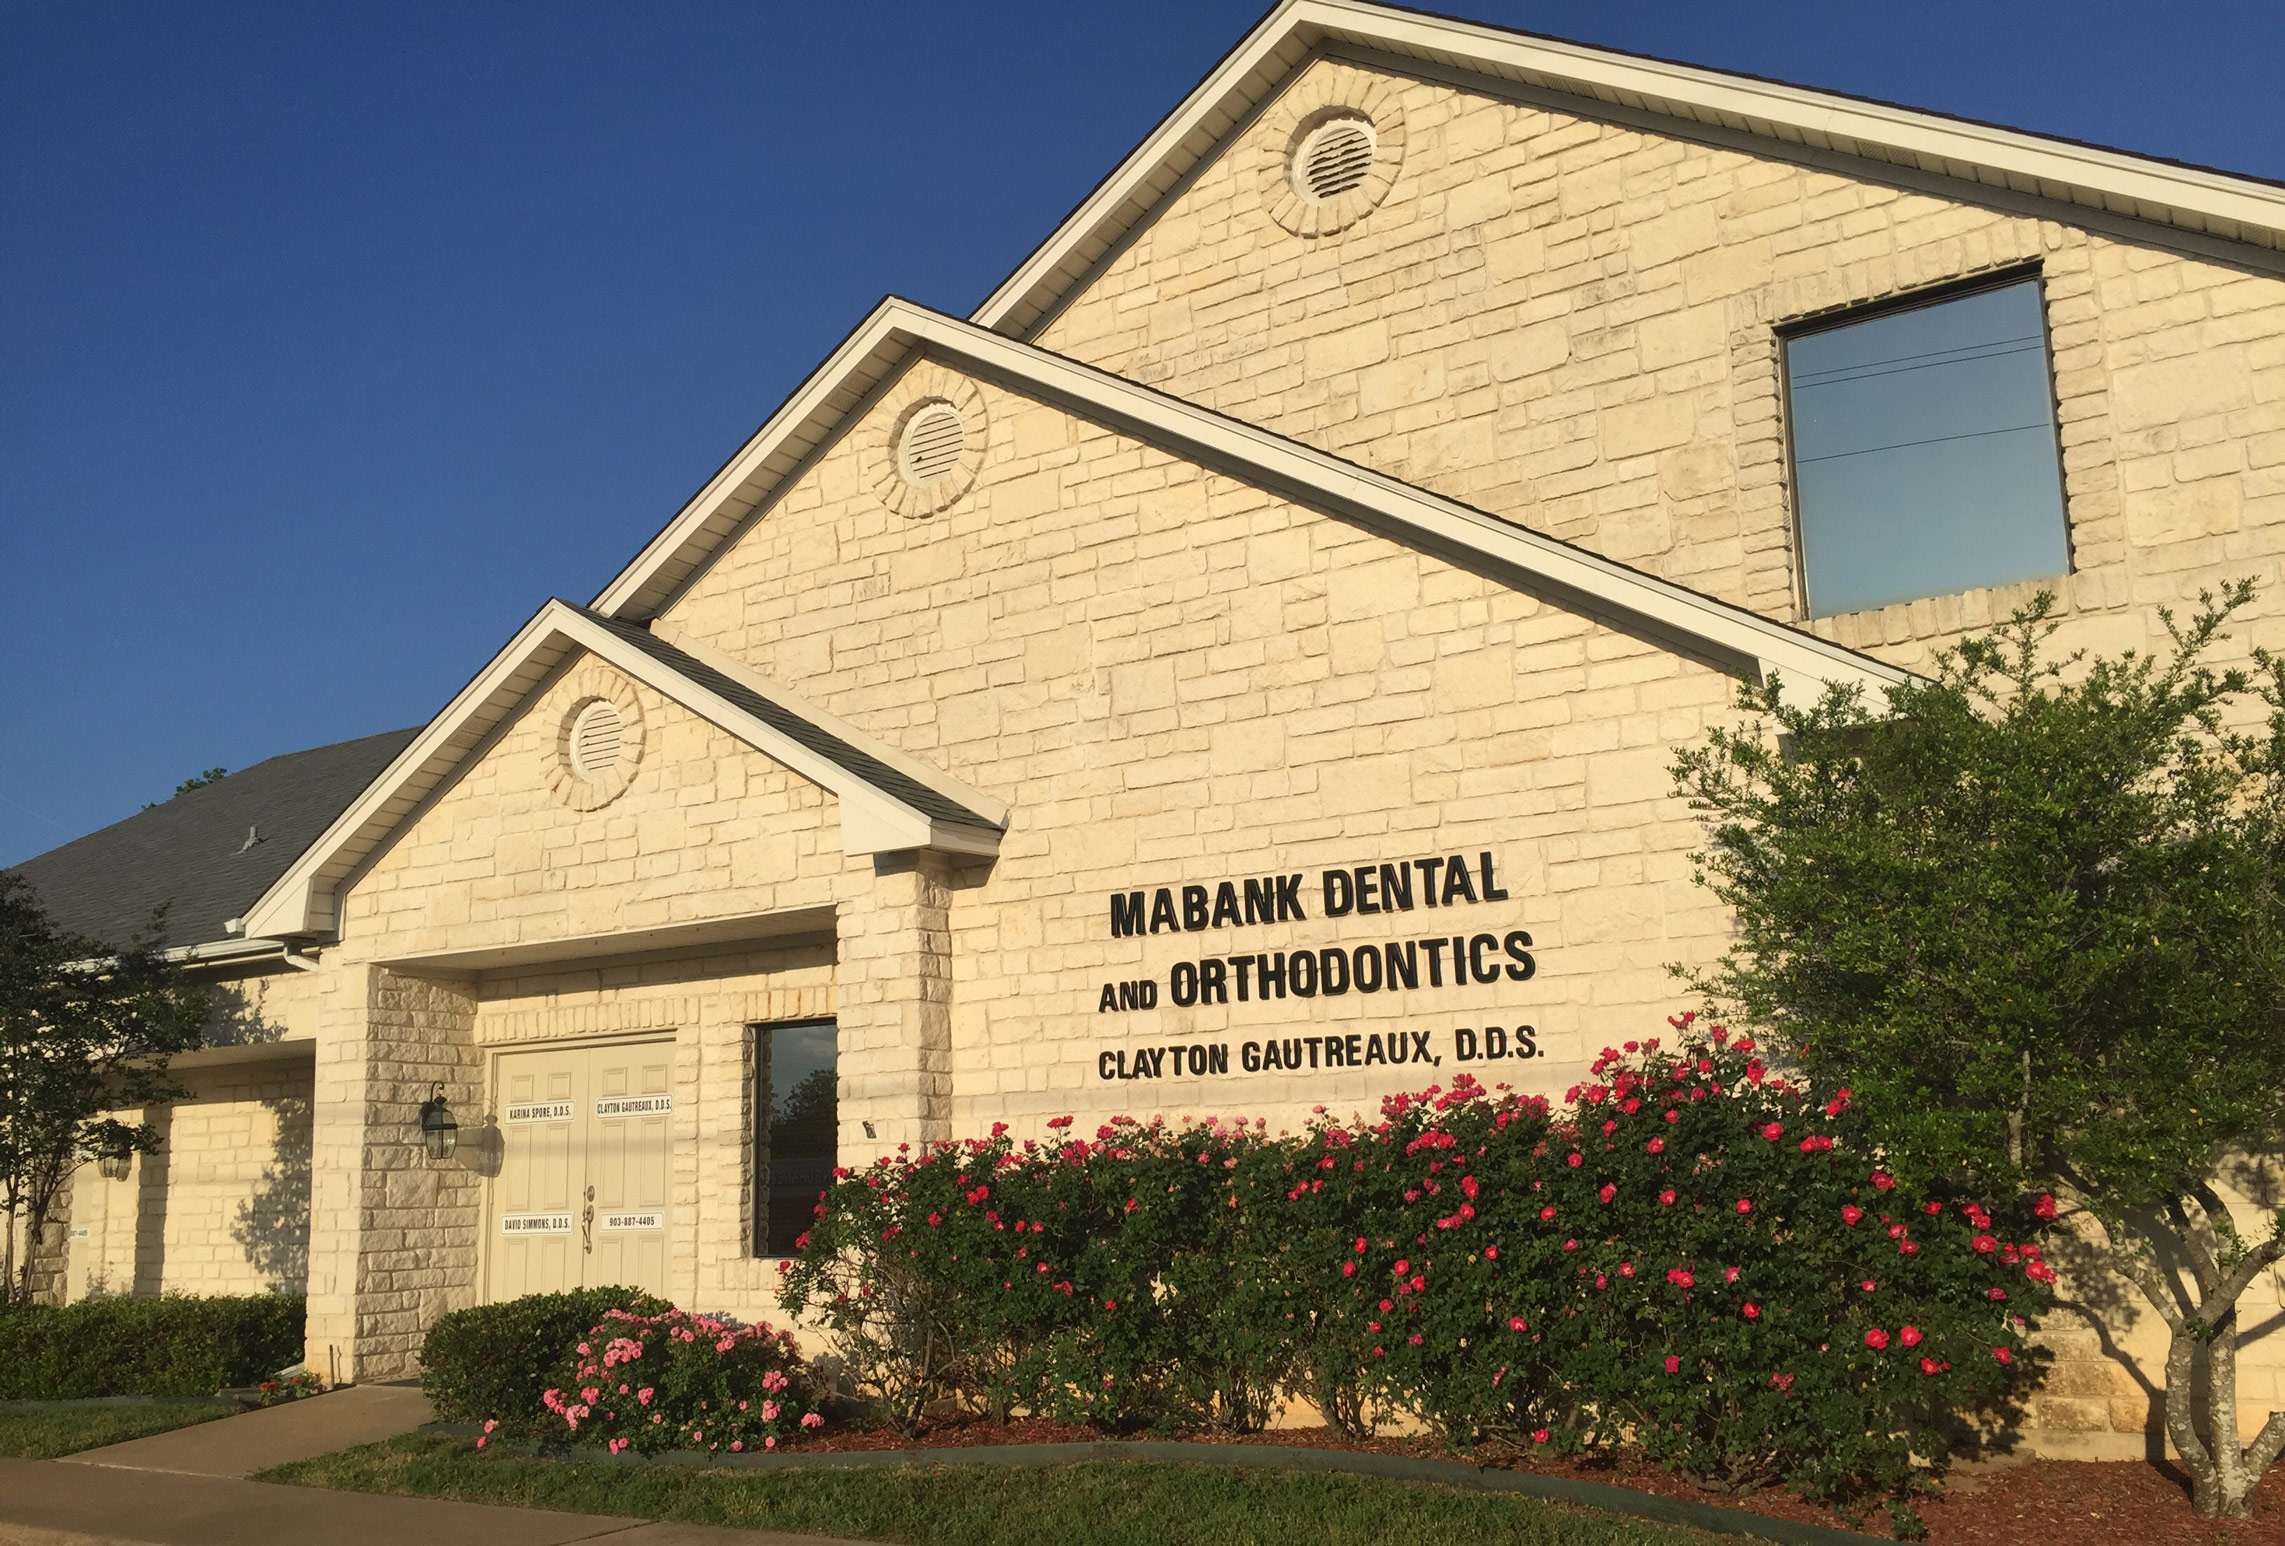 Mabank Dental Office Building